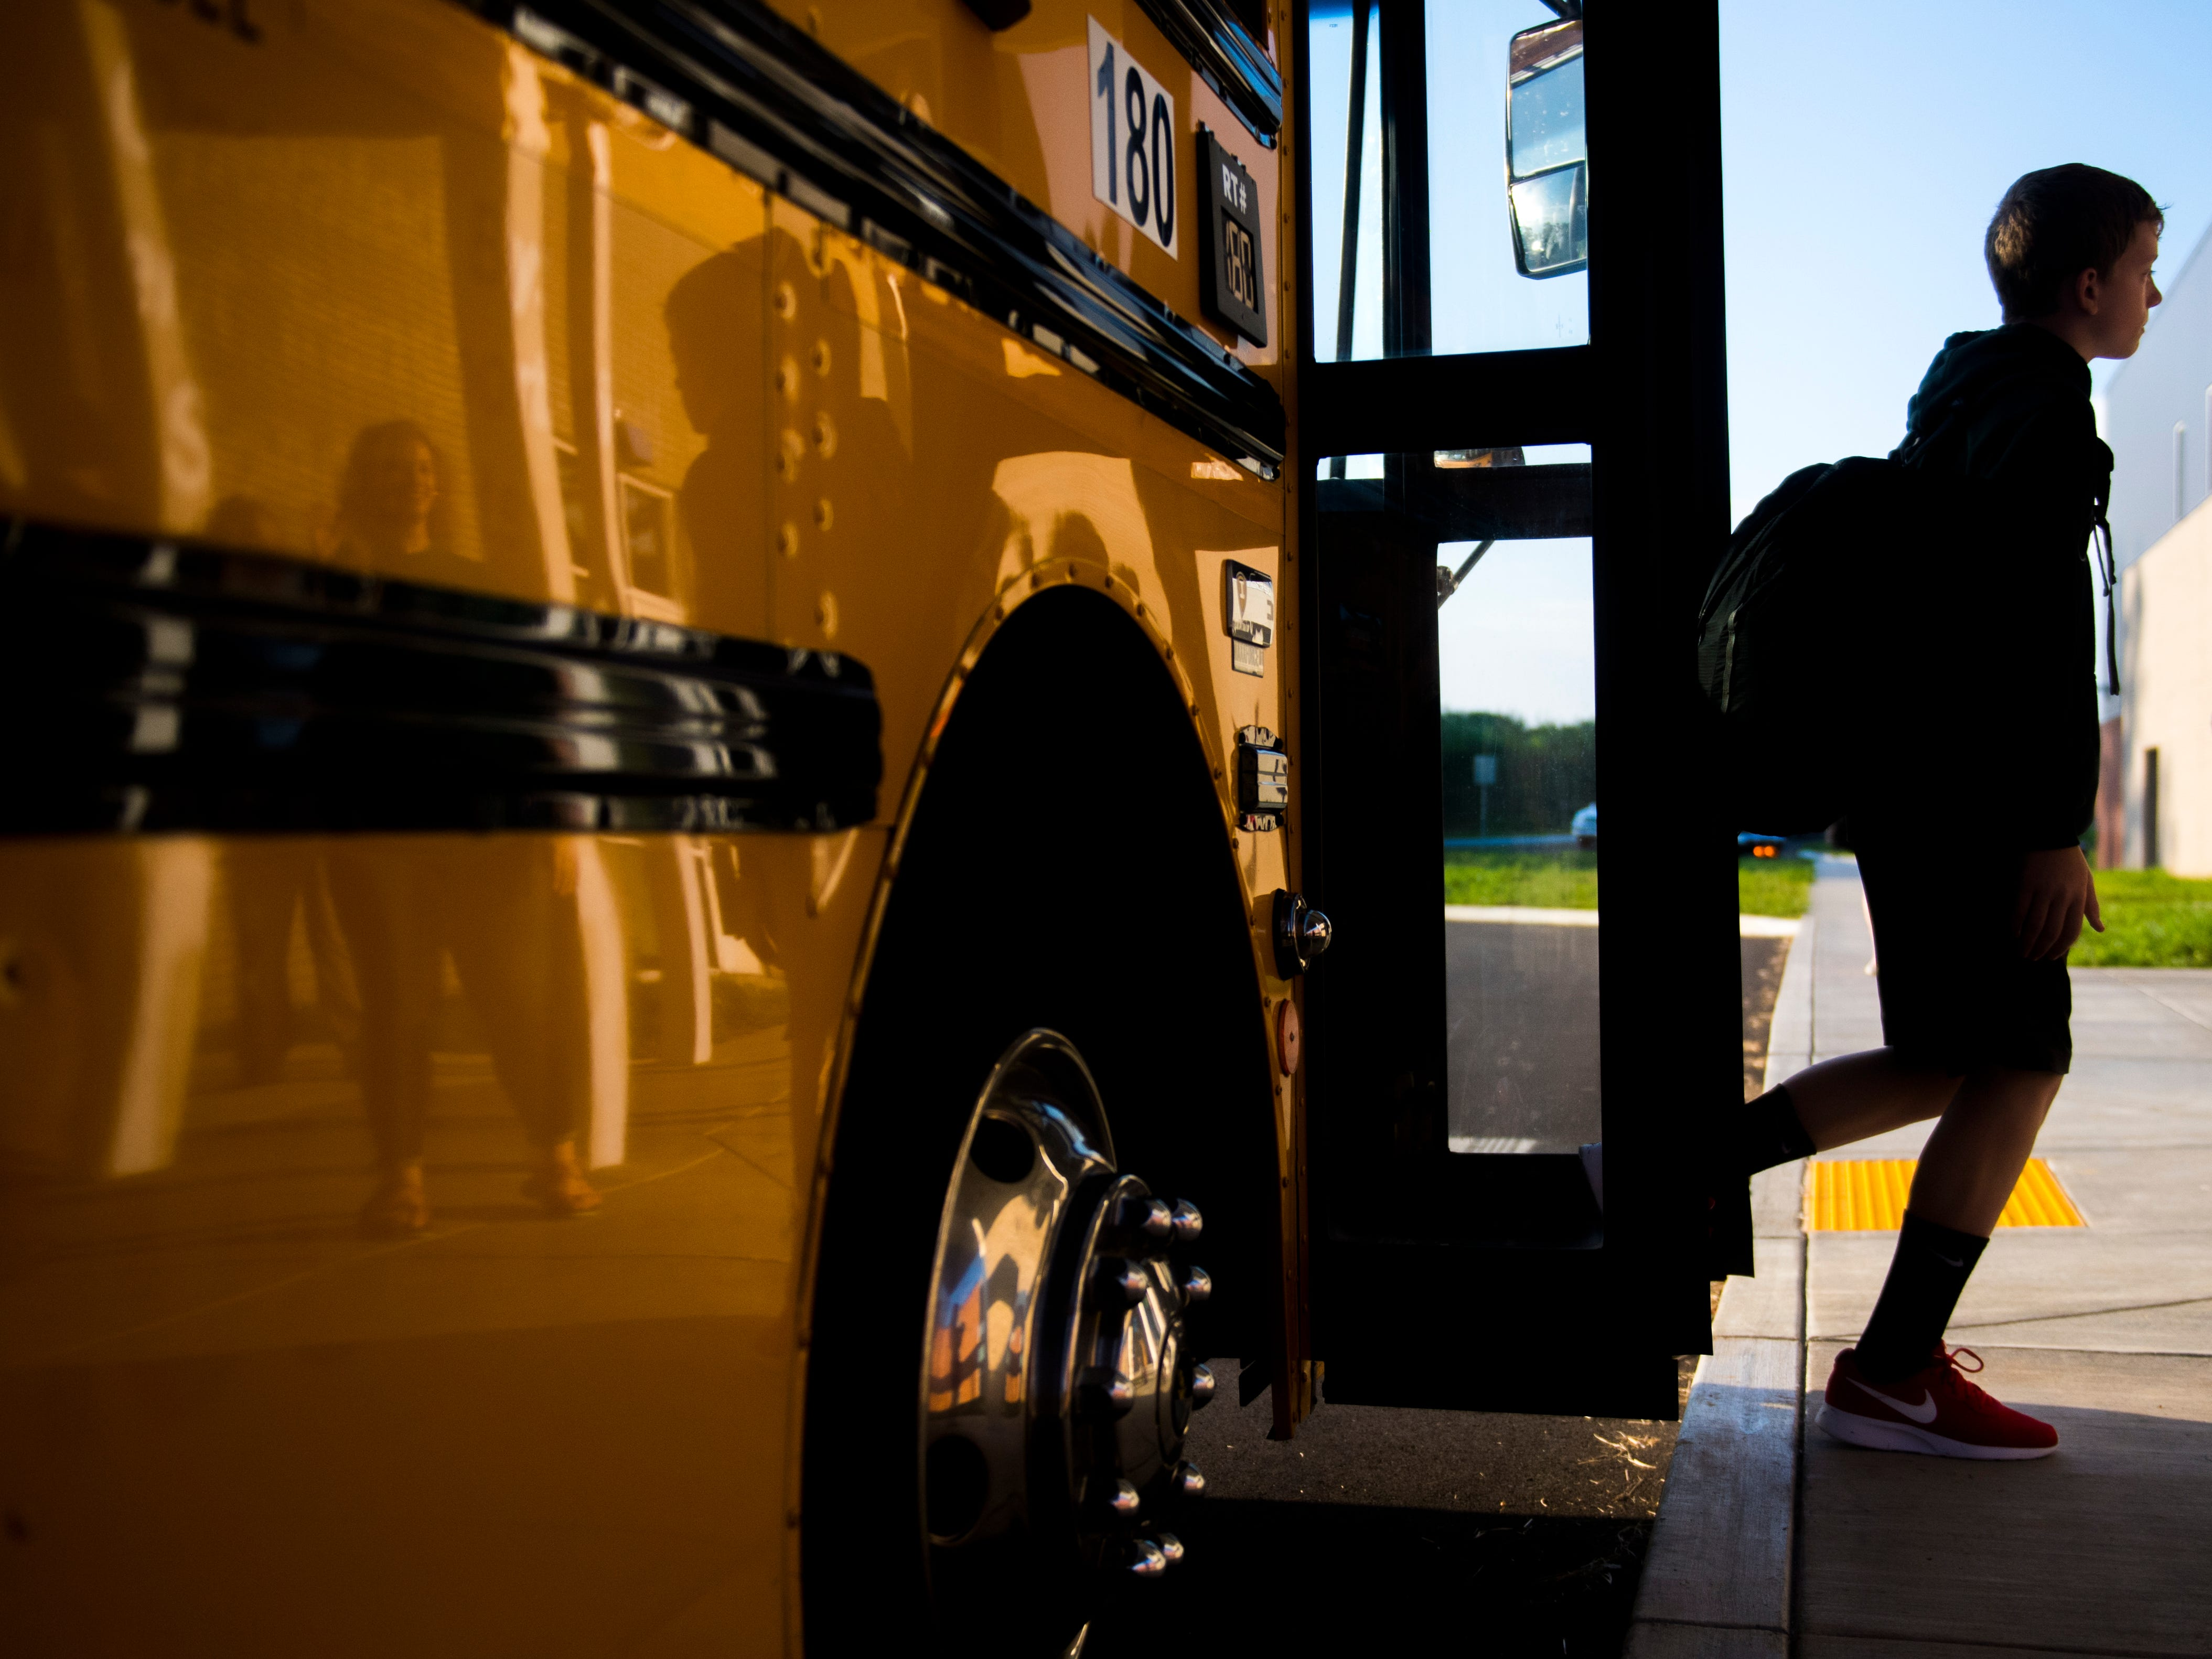 Students step off the bus to enter the new Gibbs Middle School for the first day of school on Wednesday, August 8, 2018.